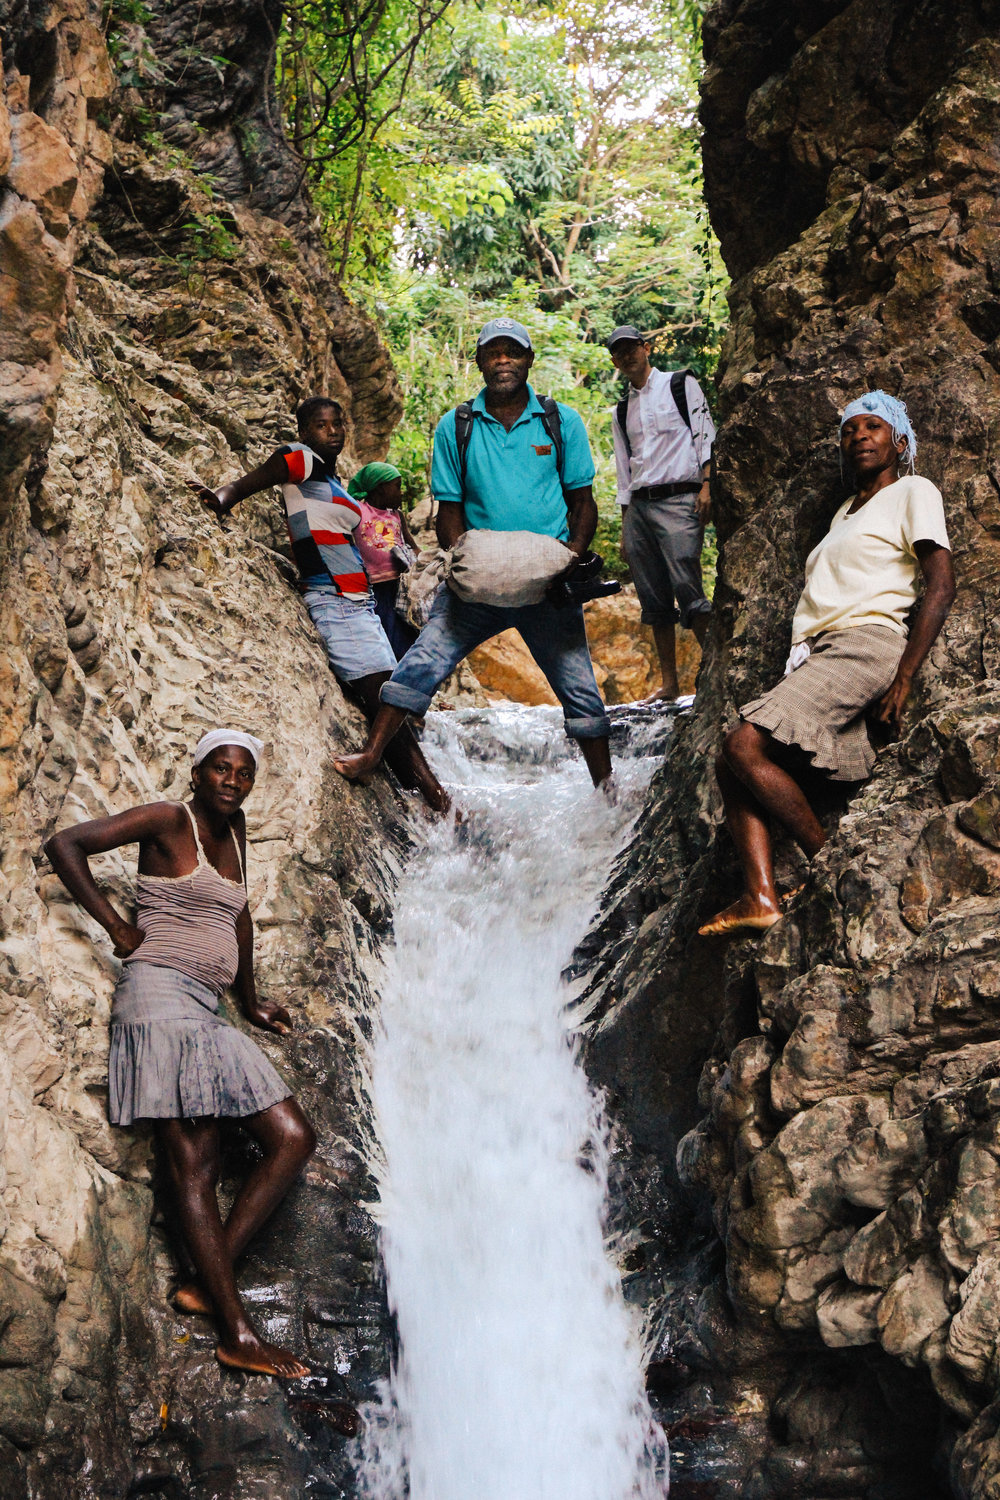 The shortest route to reach medical assistance from Wopisa requires descending this waterfall.